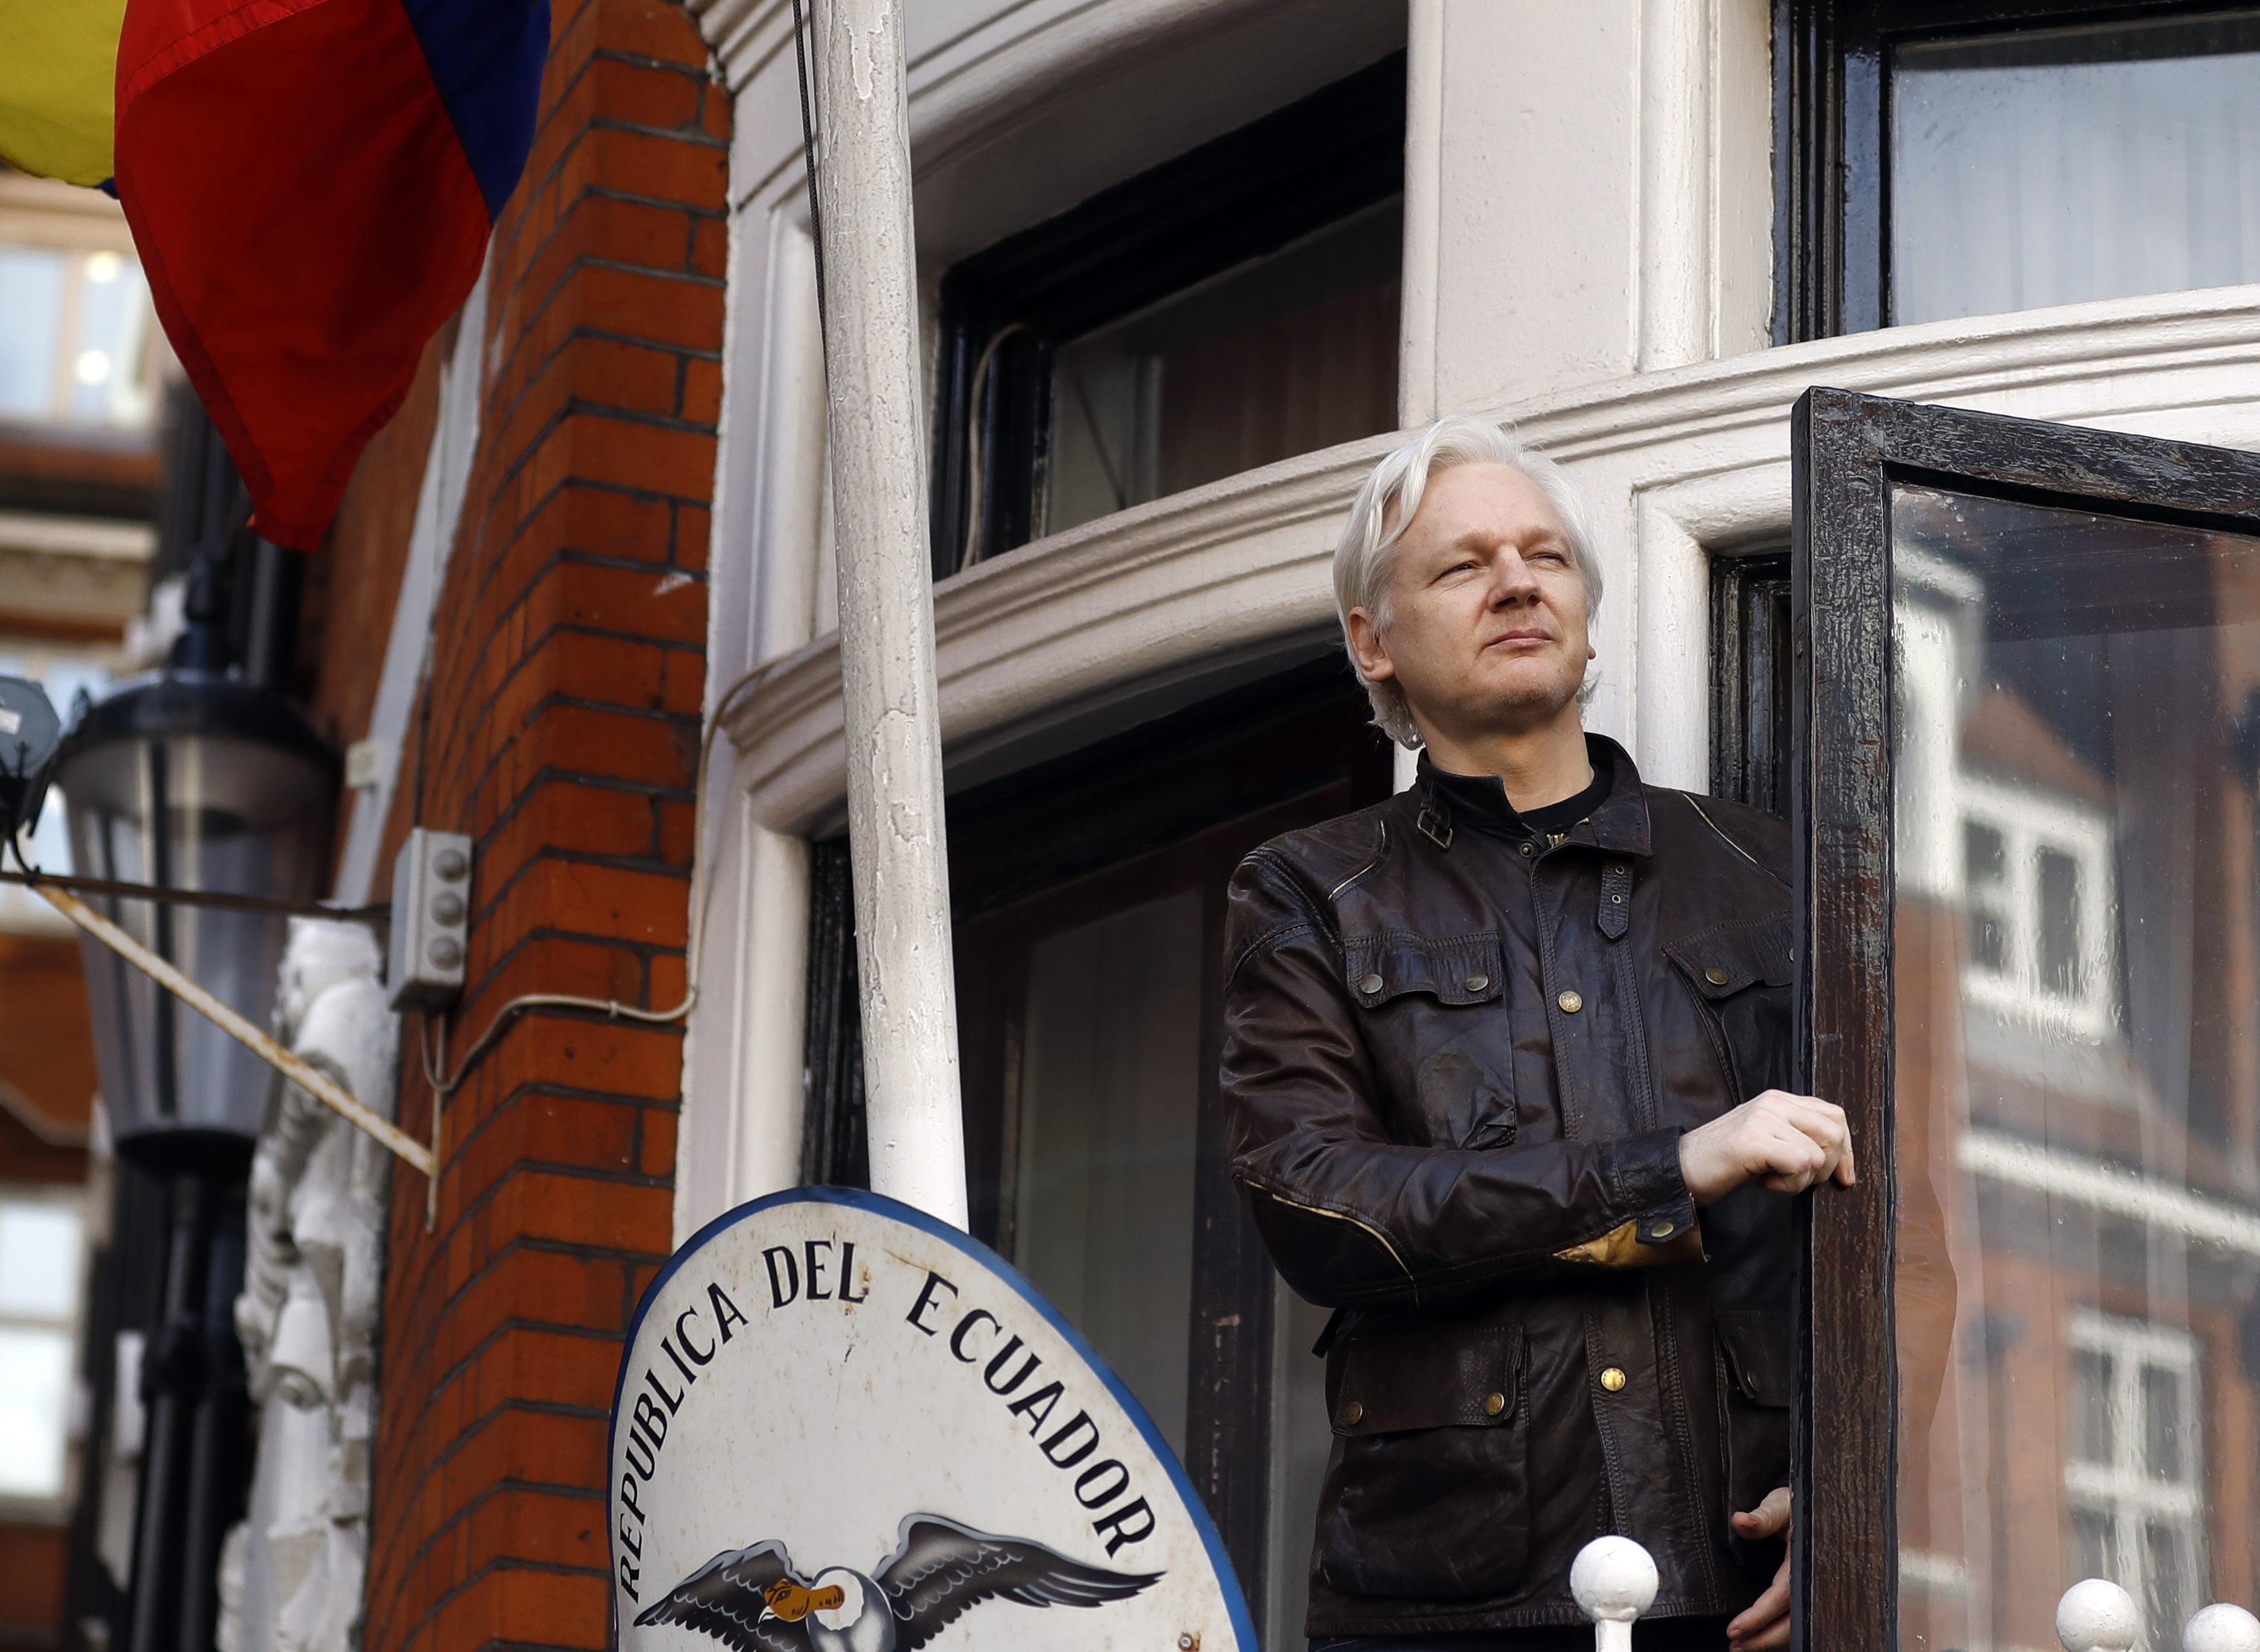 Feds charge Wikileaks founder Julian Assange in aiding Chelsea Manning to leak classified material